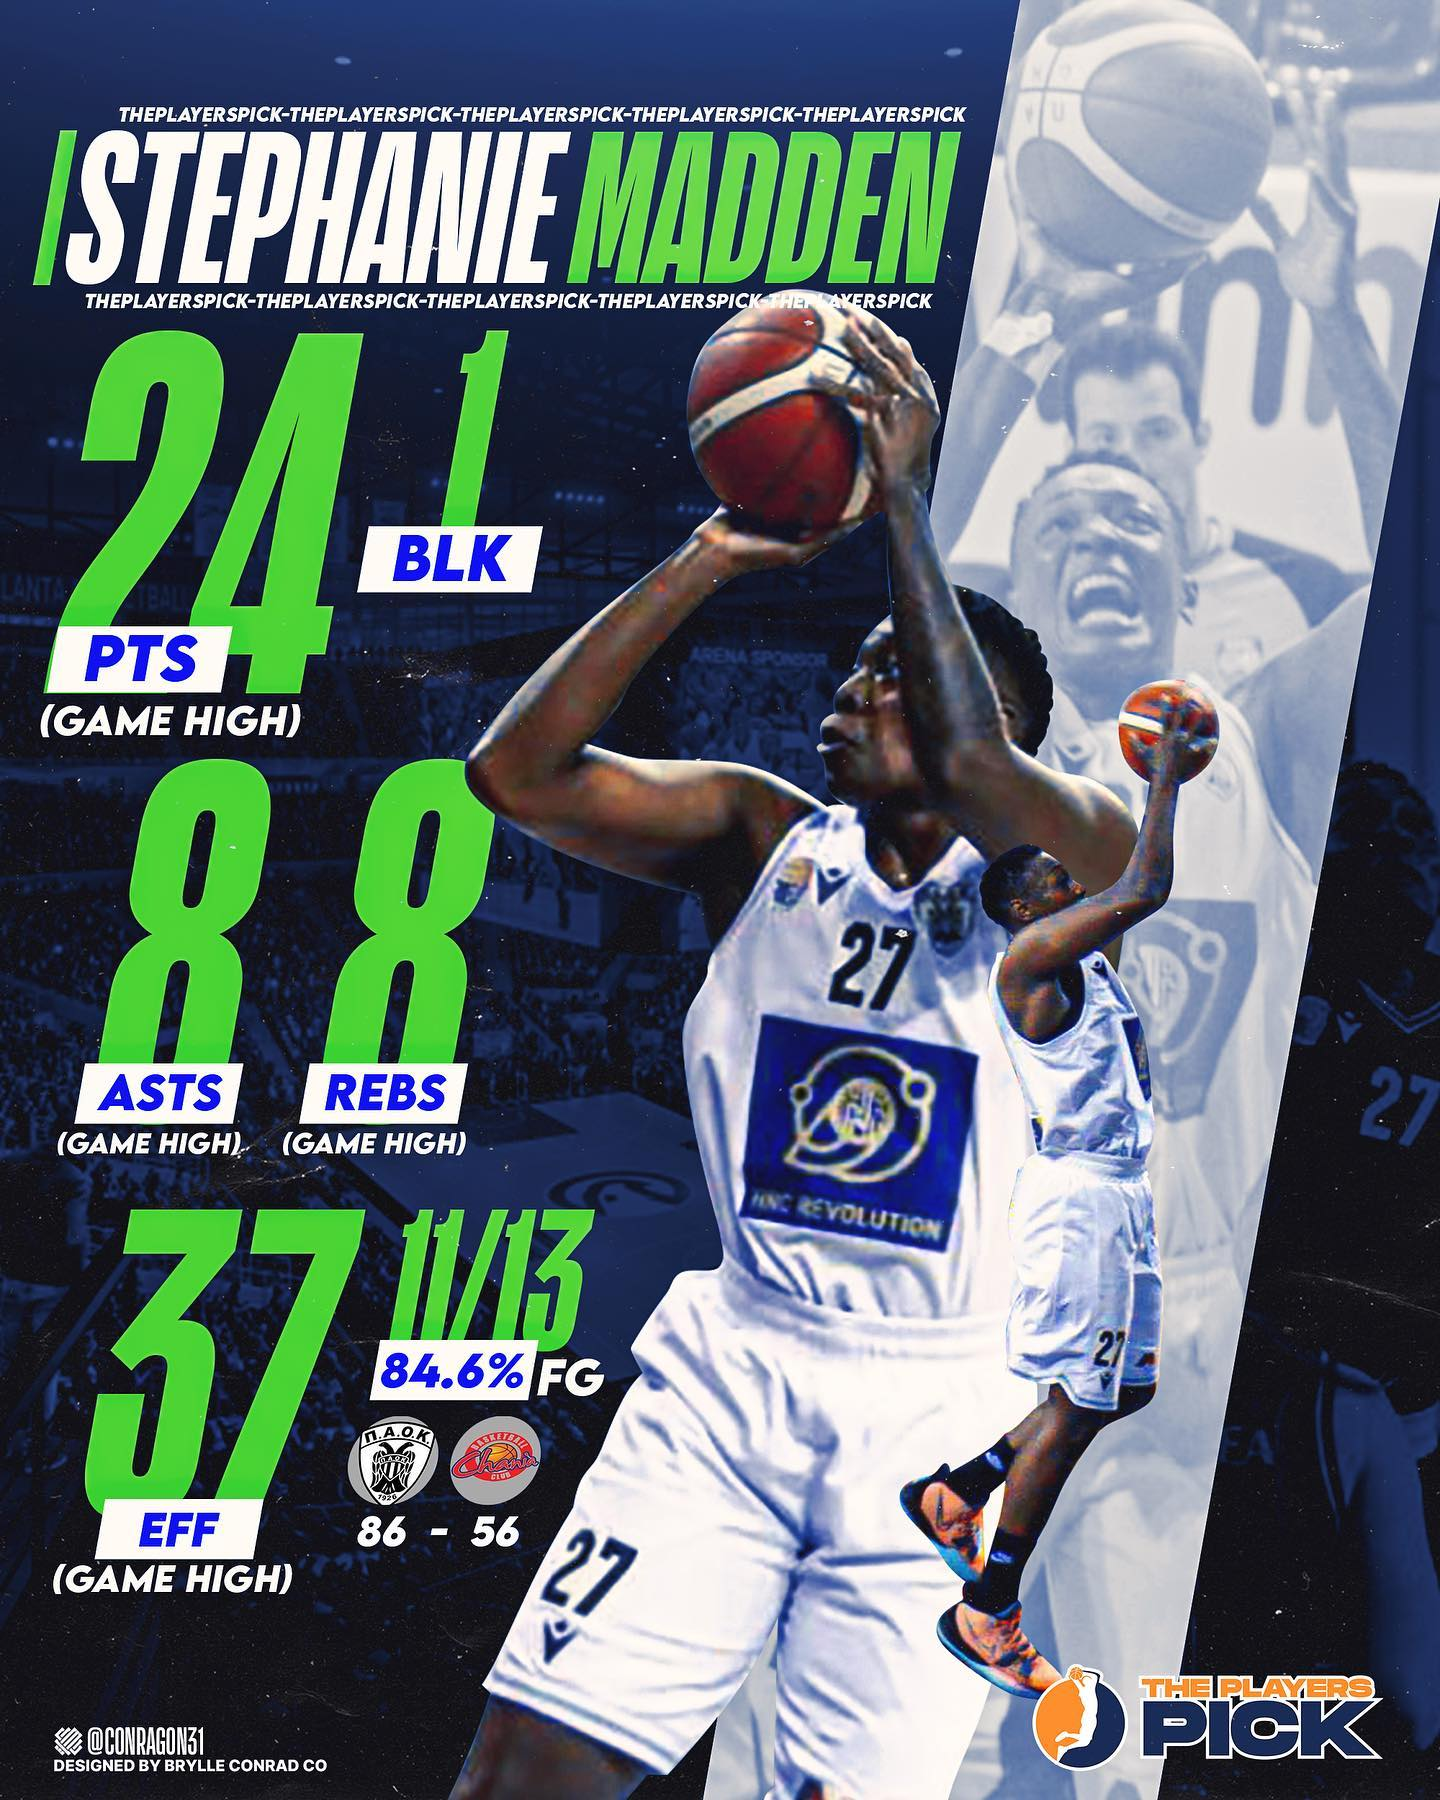 Stephanie Madden flirted with a triple double vs OAX!